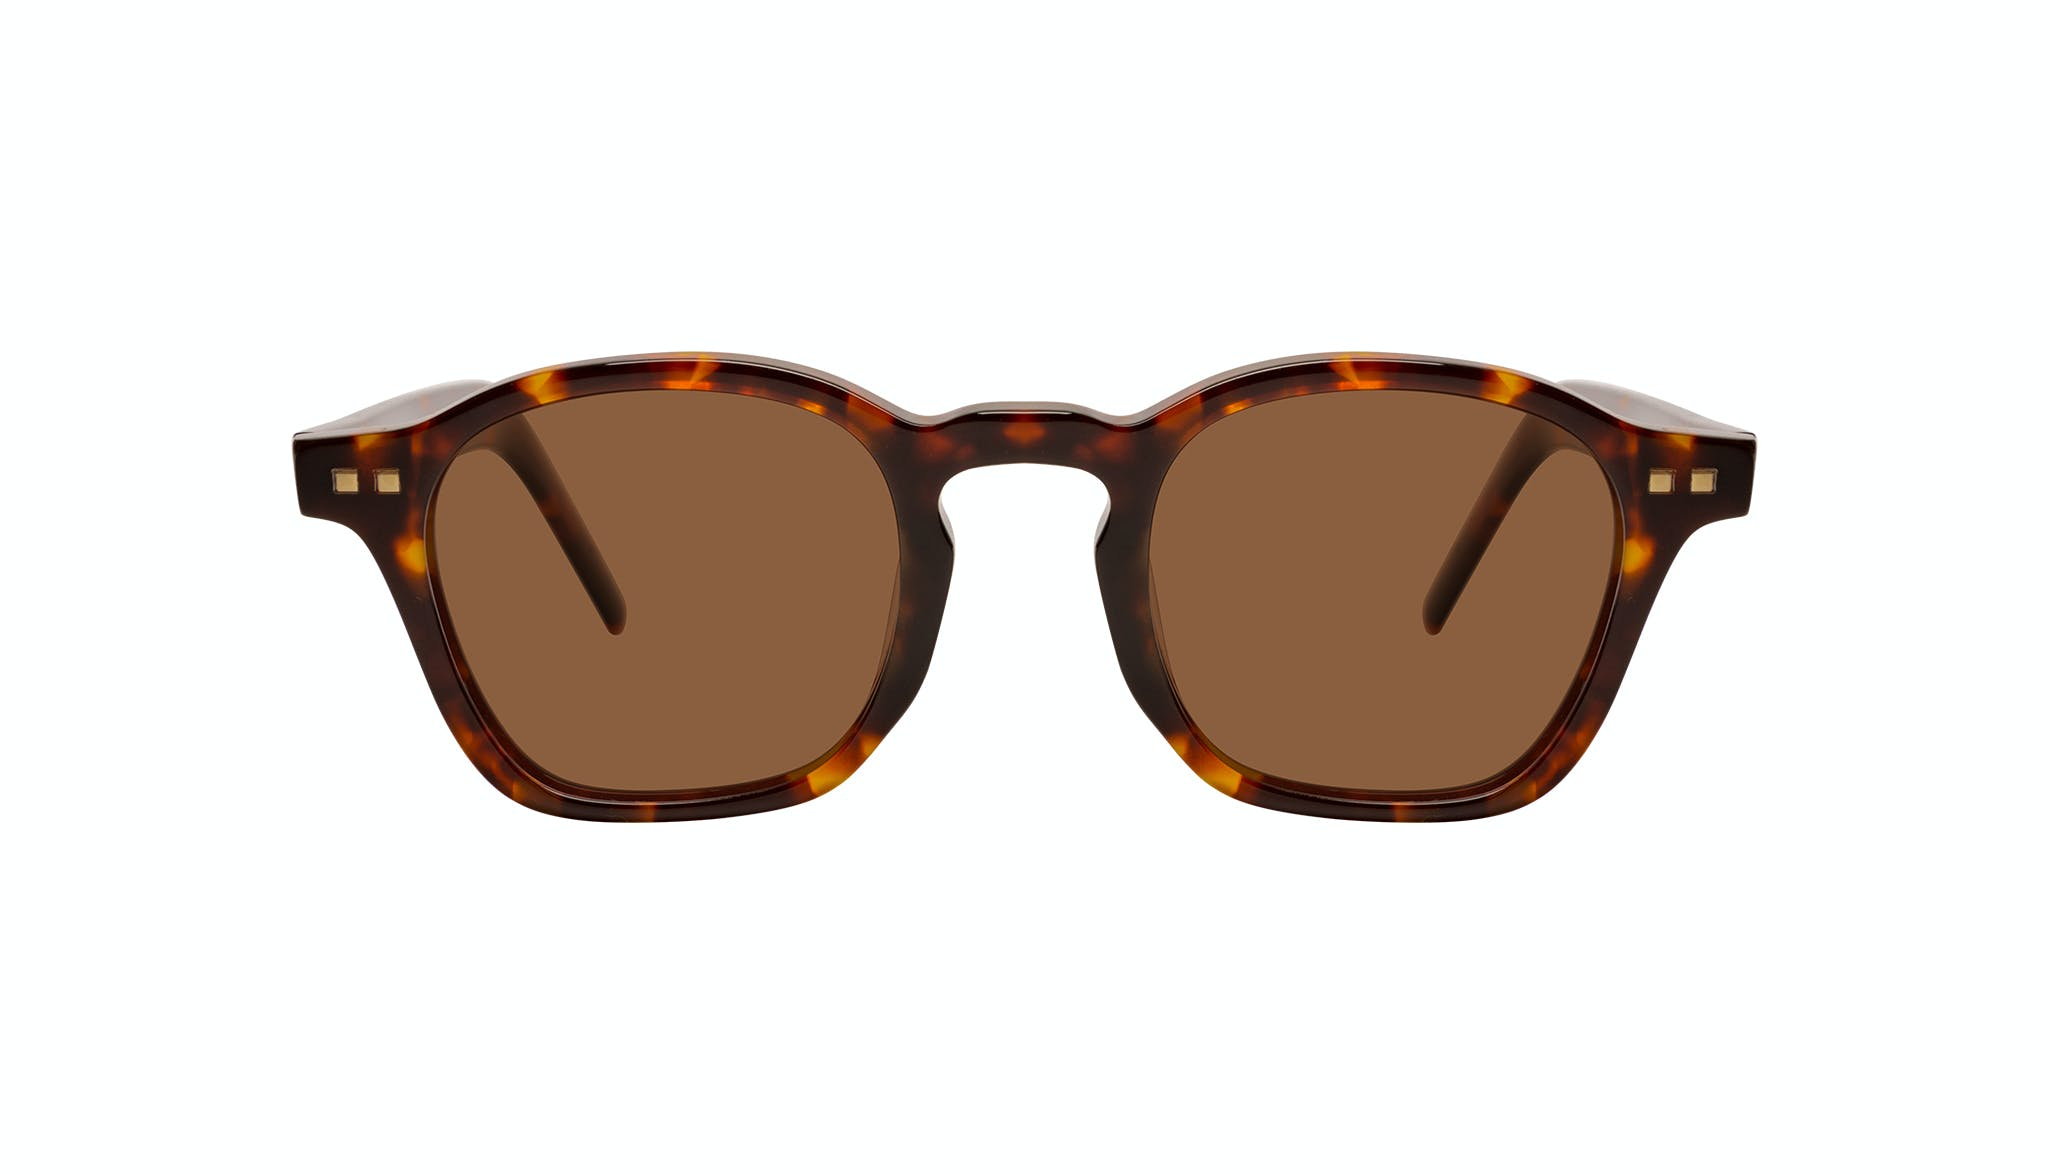 Affordable Fashion Glasses Square Sunglasses Men Brisk Tortoise Front